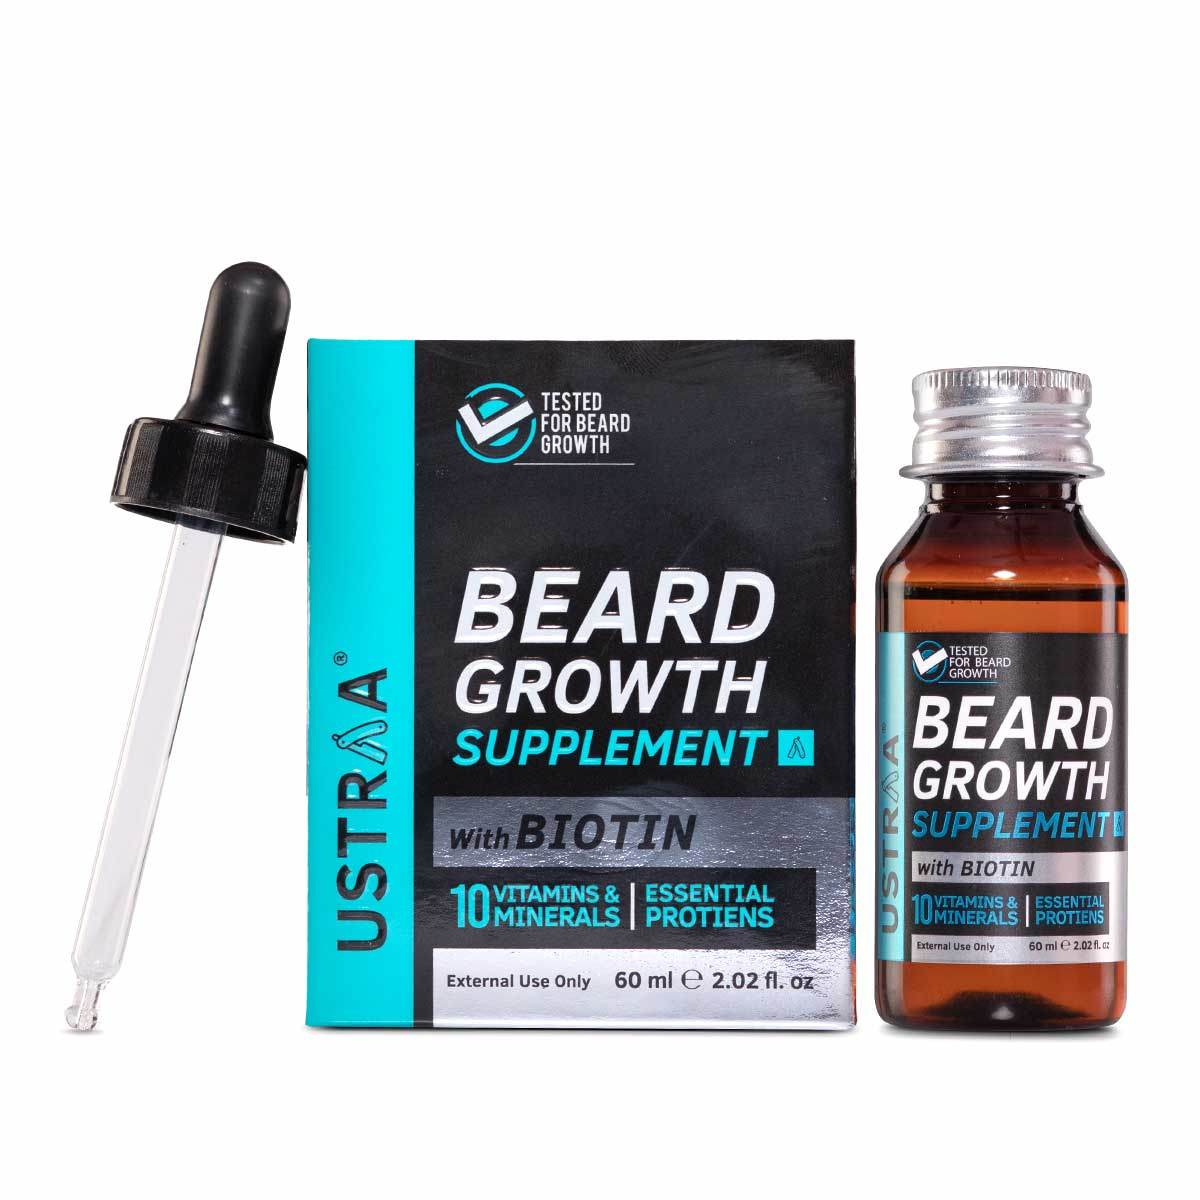 Ustraa's Beard Growth Supplement for Men 60 ml - Boosts beard growth and strengthens hair follicles